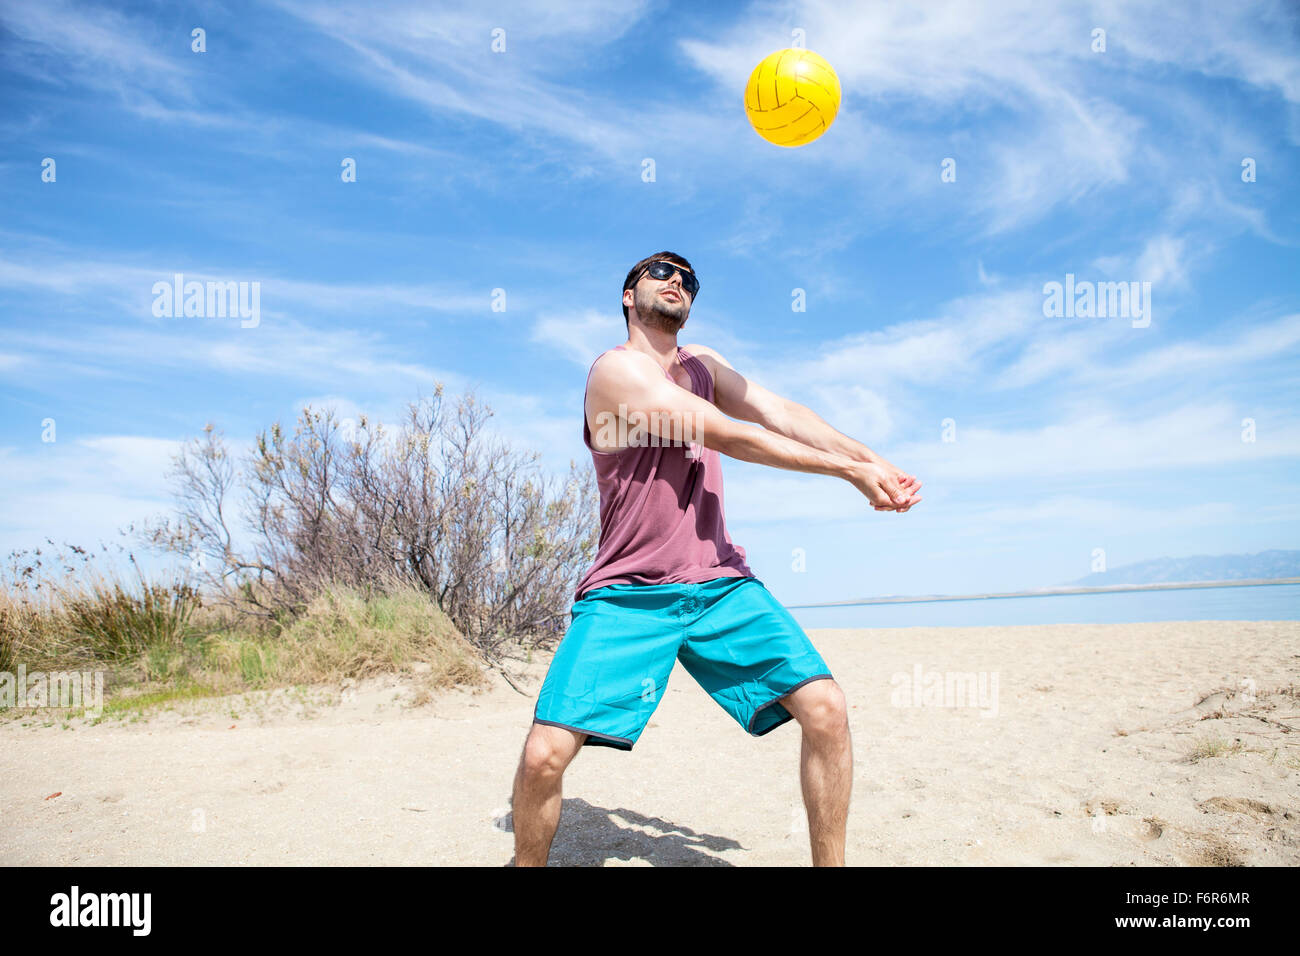 Young man playing beach volleyball - Stock Image